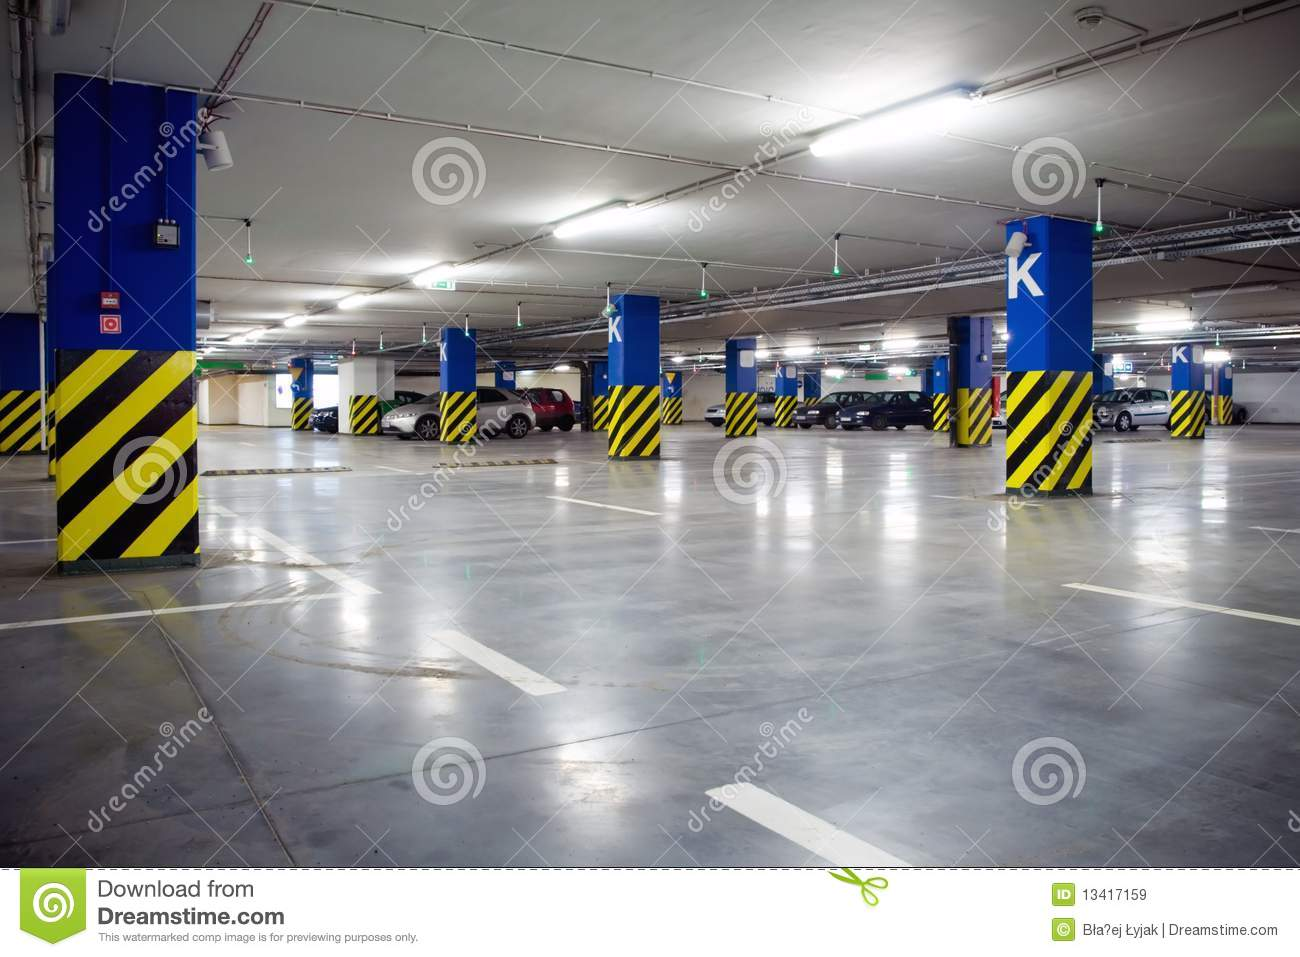 Underground parking garage with cars